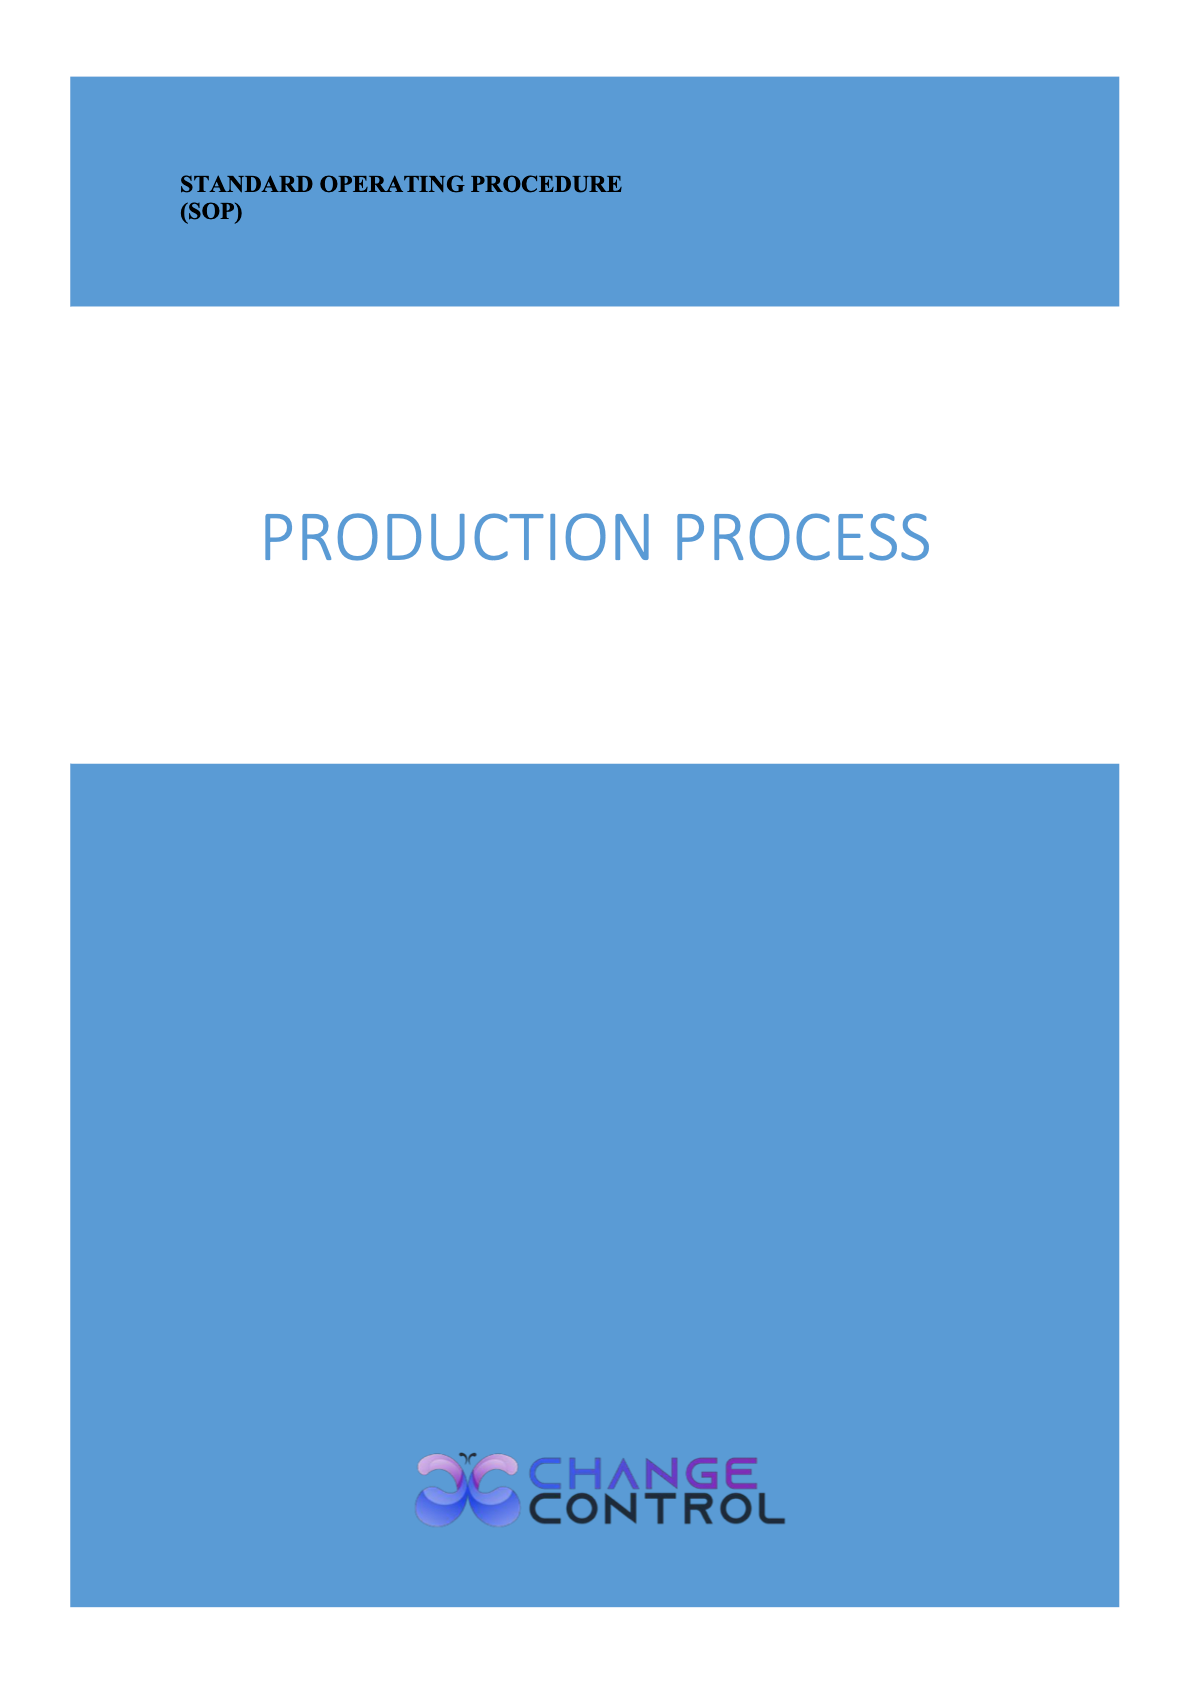 Production-Process-SOP-Example_CoverPage